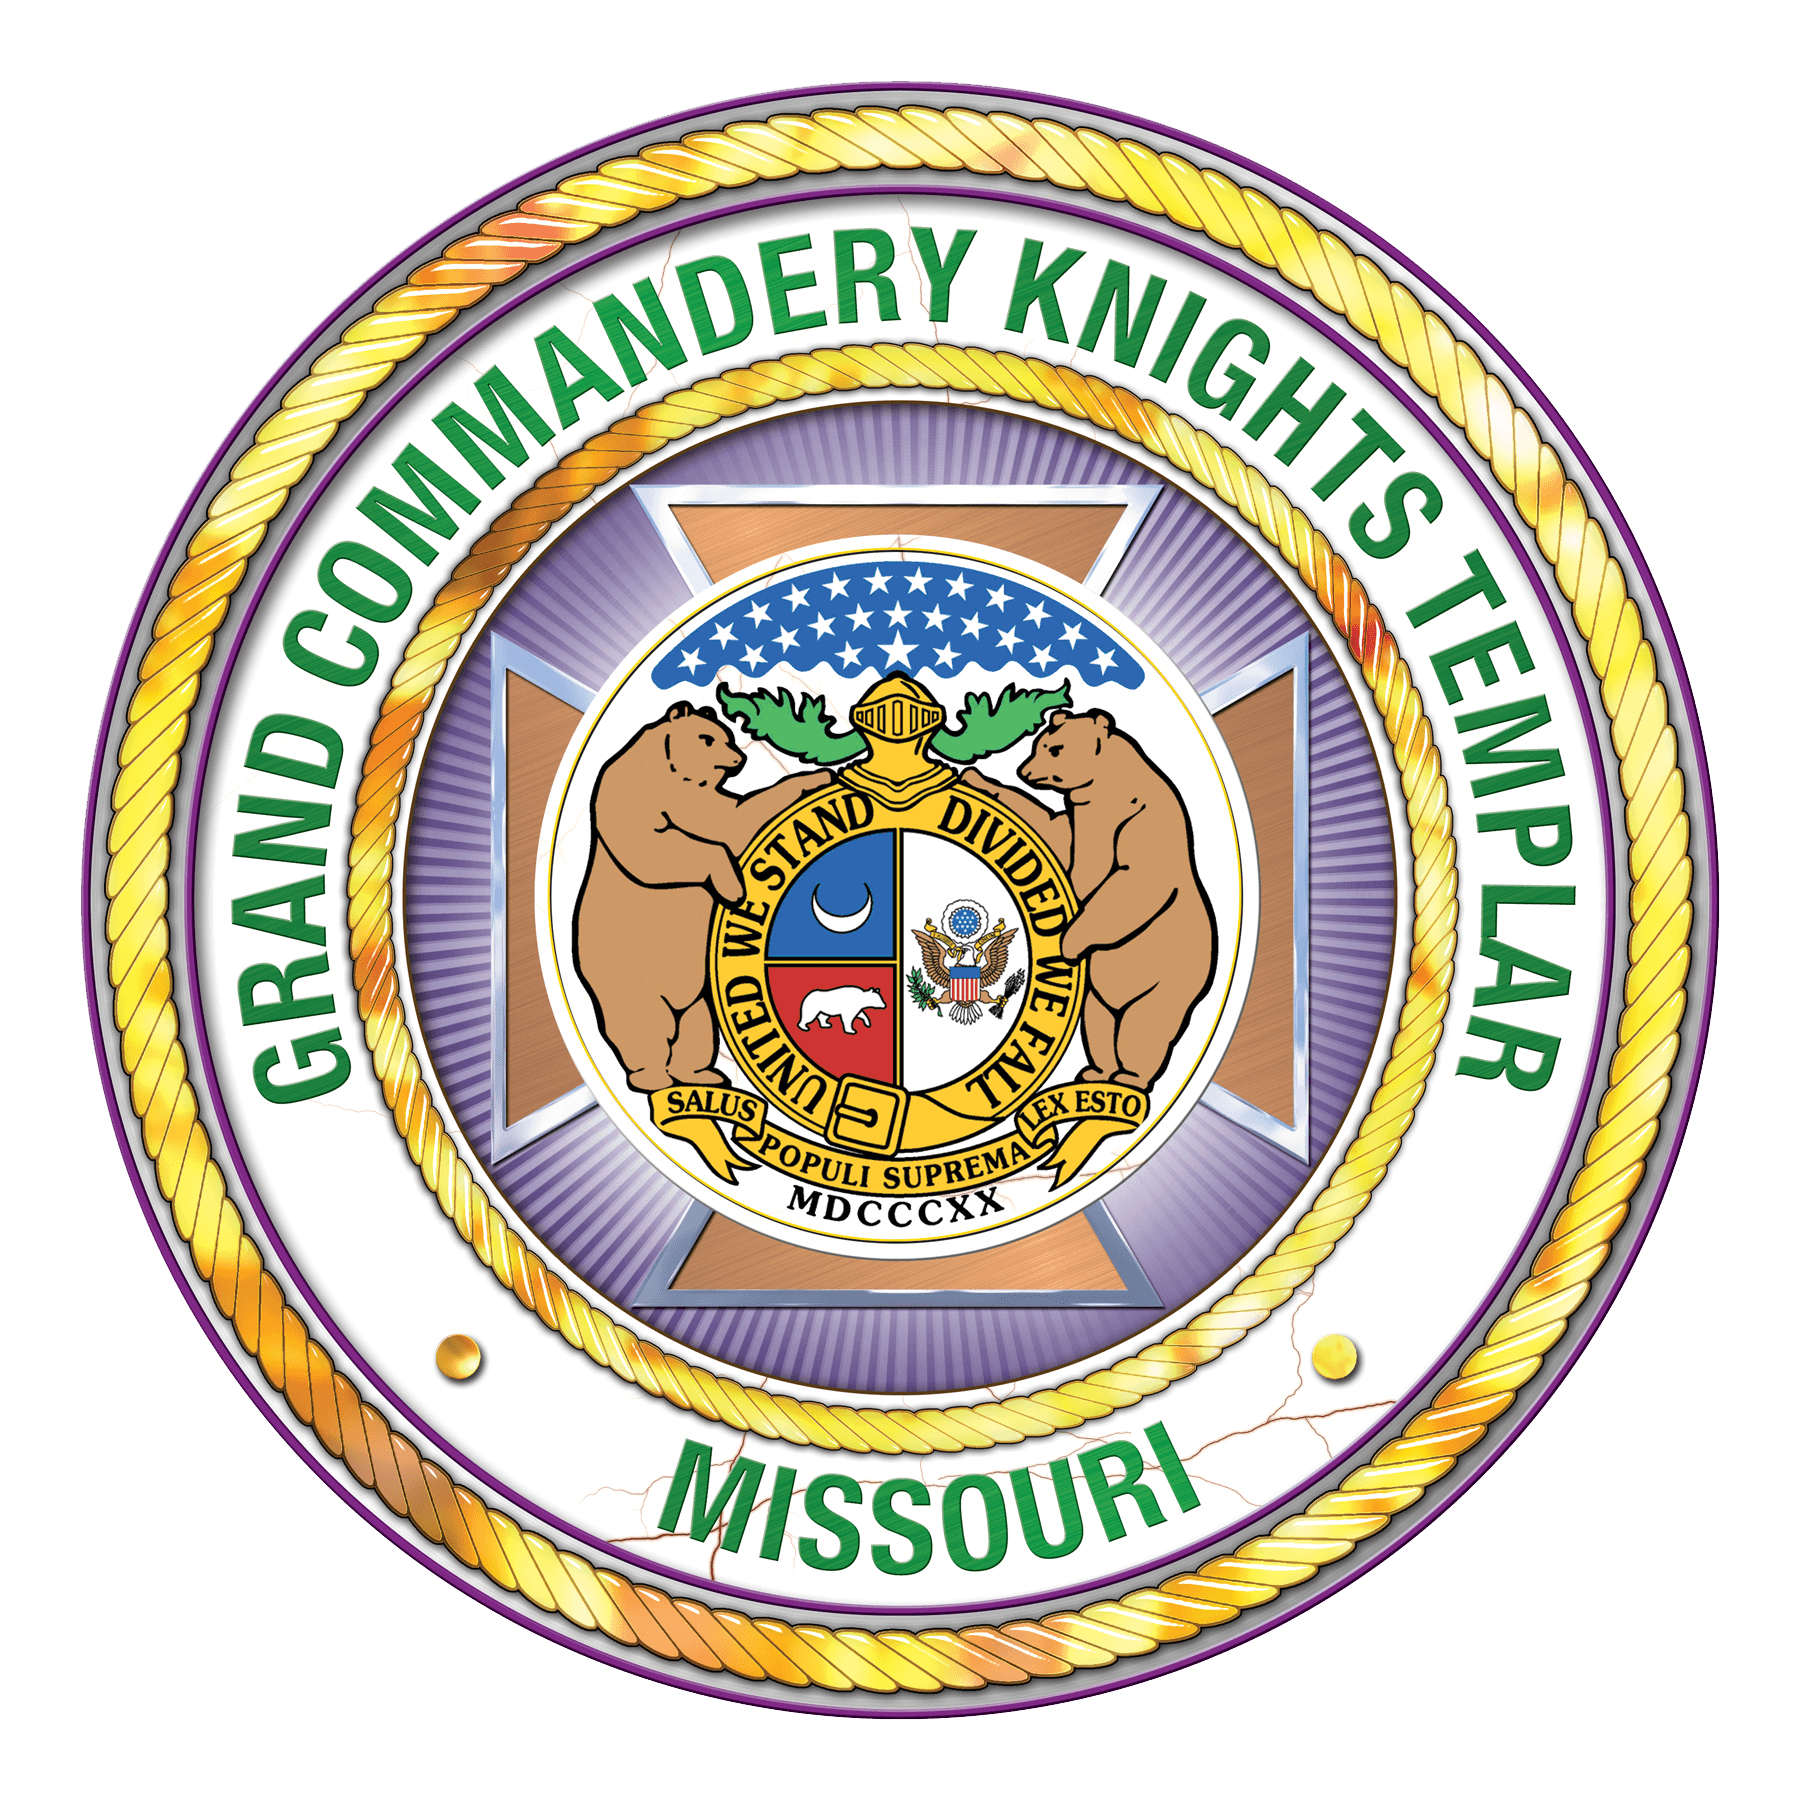 Grand Commander Official Visit - Neosho Commandery No. 57 - Neosho @ Neosho Masonic Lodge | Neosho | Missouri | United States